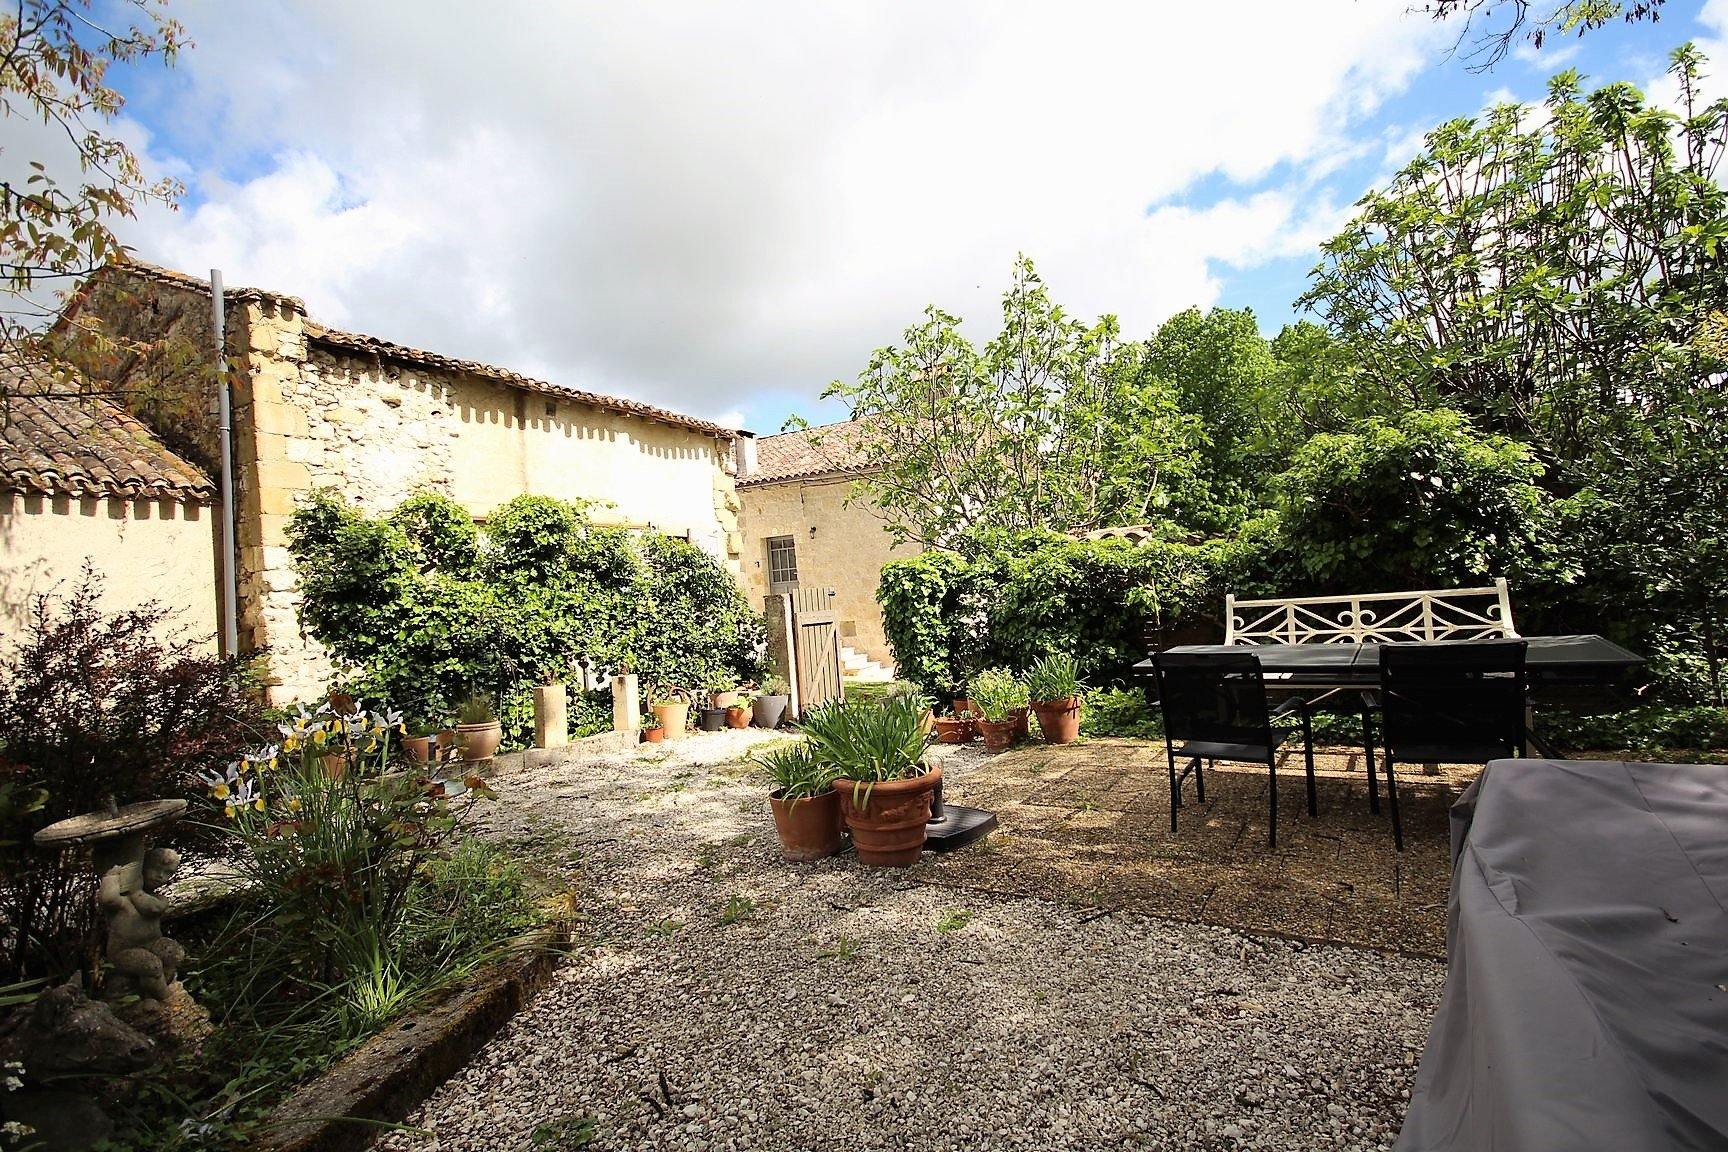 Two bedroom stone house in the heart of a Bastide Town, with barn, walled garden and stone workshop